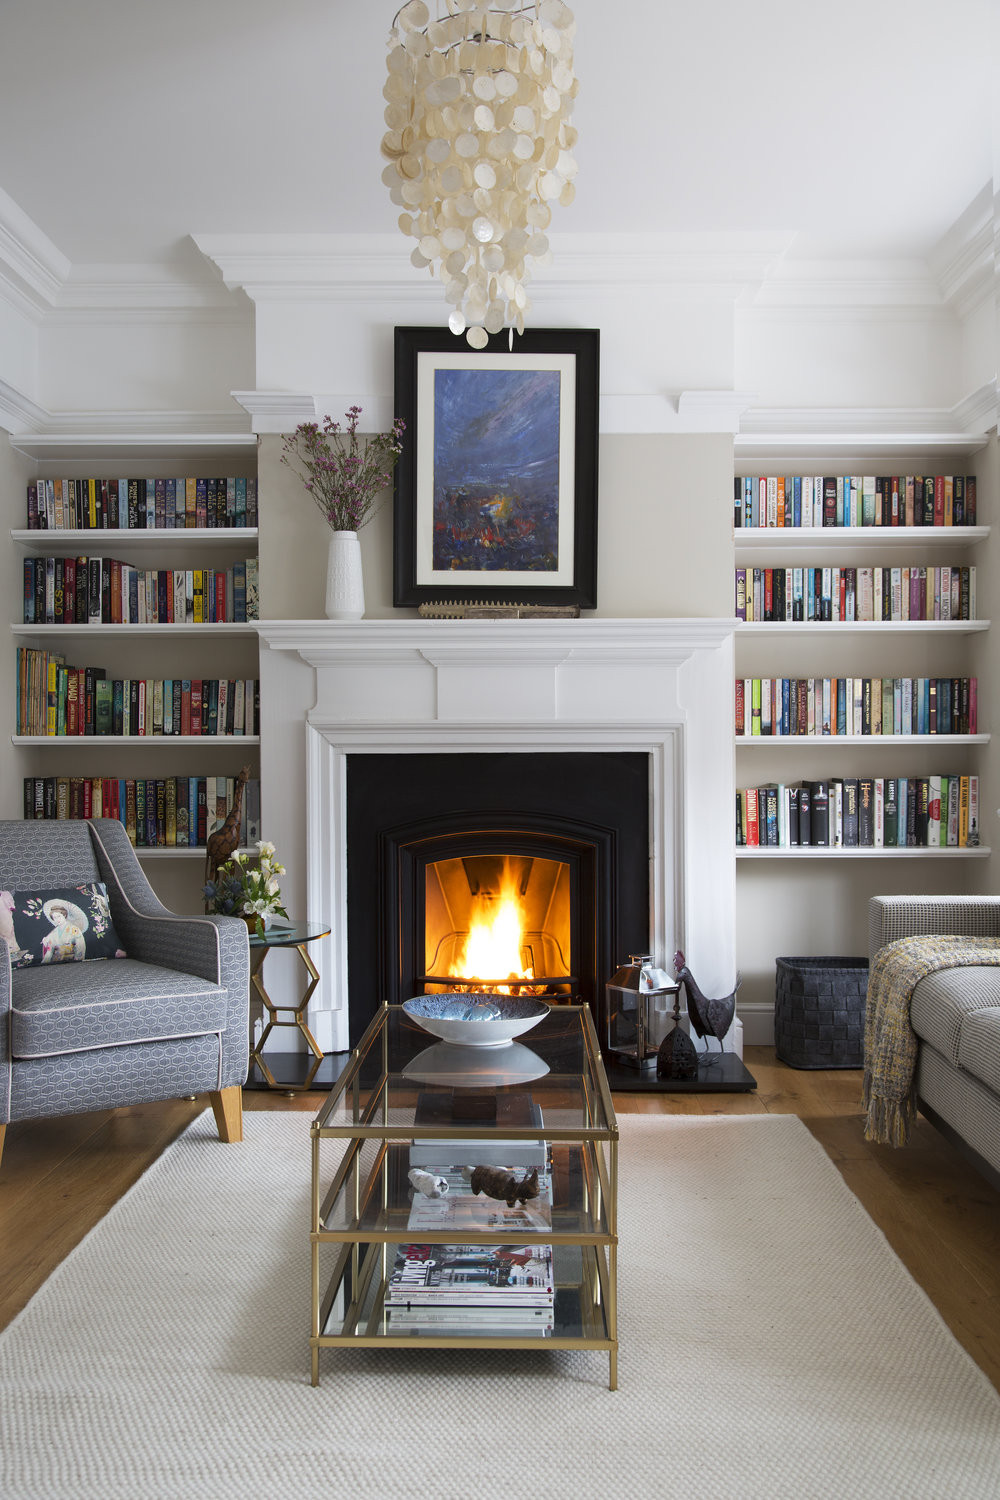 Period features and an open fireplace with contemporary pieces like a brass coffee table in an arts and crafts family home in Sevenoaks Kent - Interior Design by Phoebe Oldrey of Smartstyle Interiors